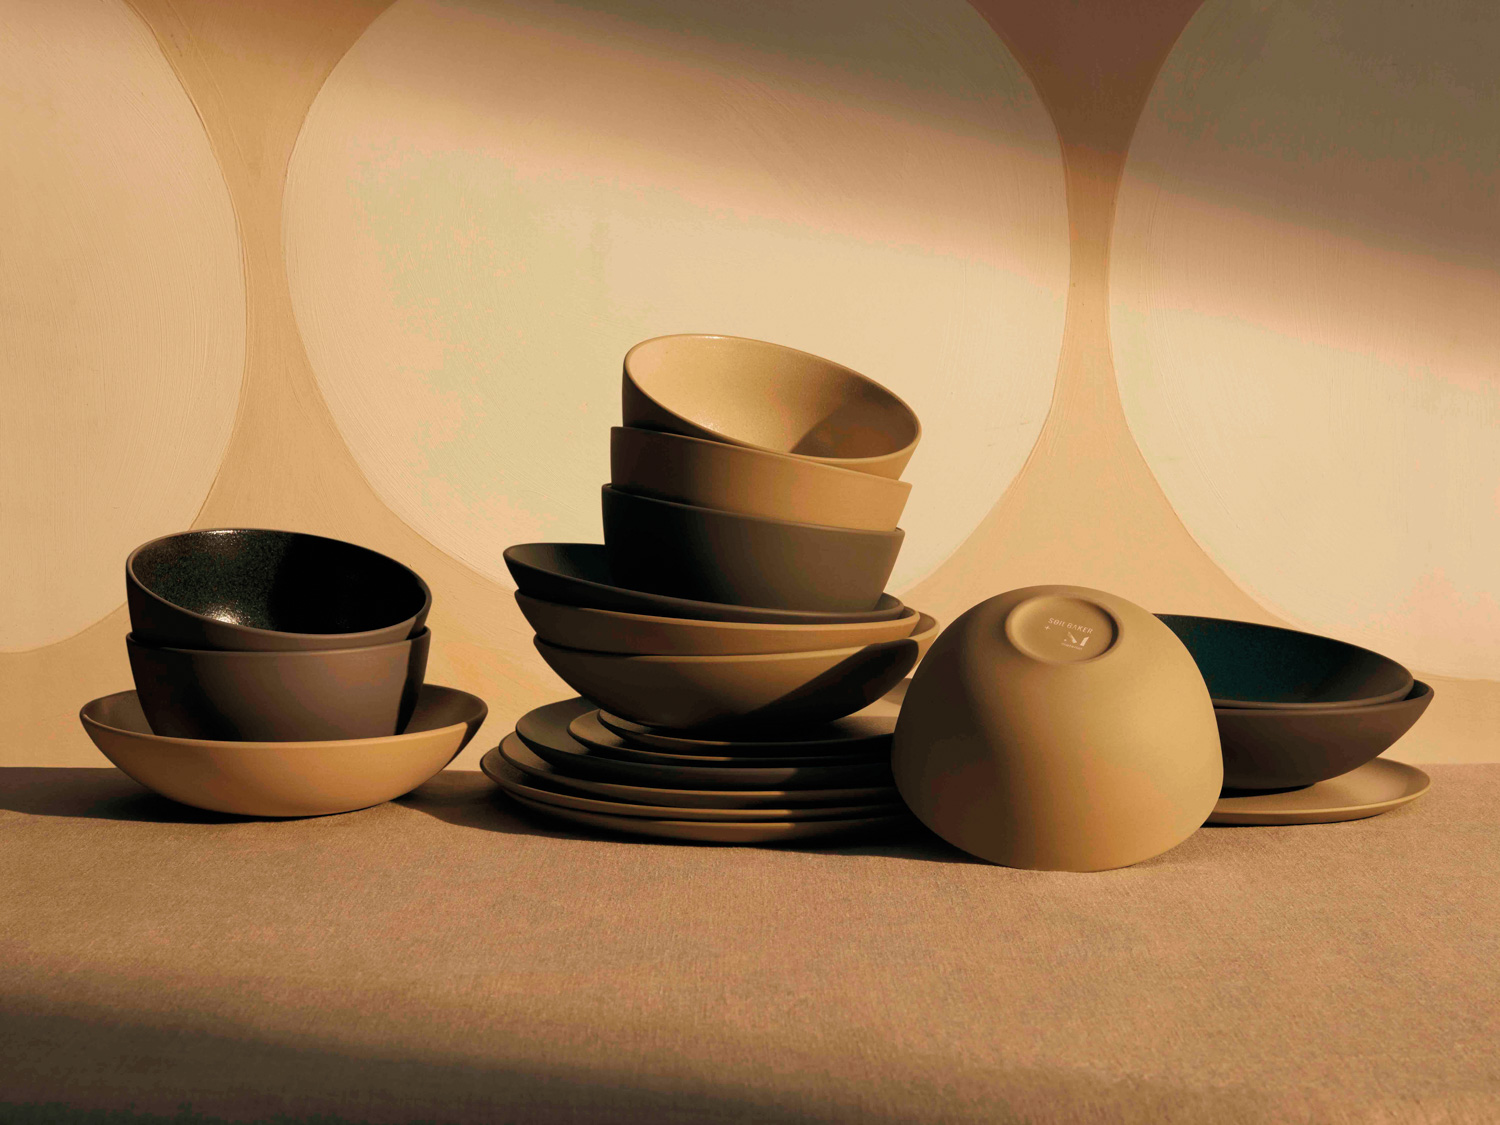 Ceramic bowls and plates in earthenware tones